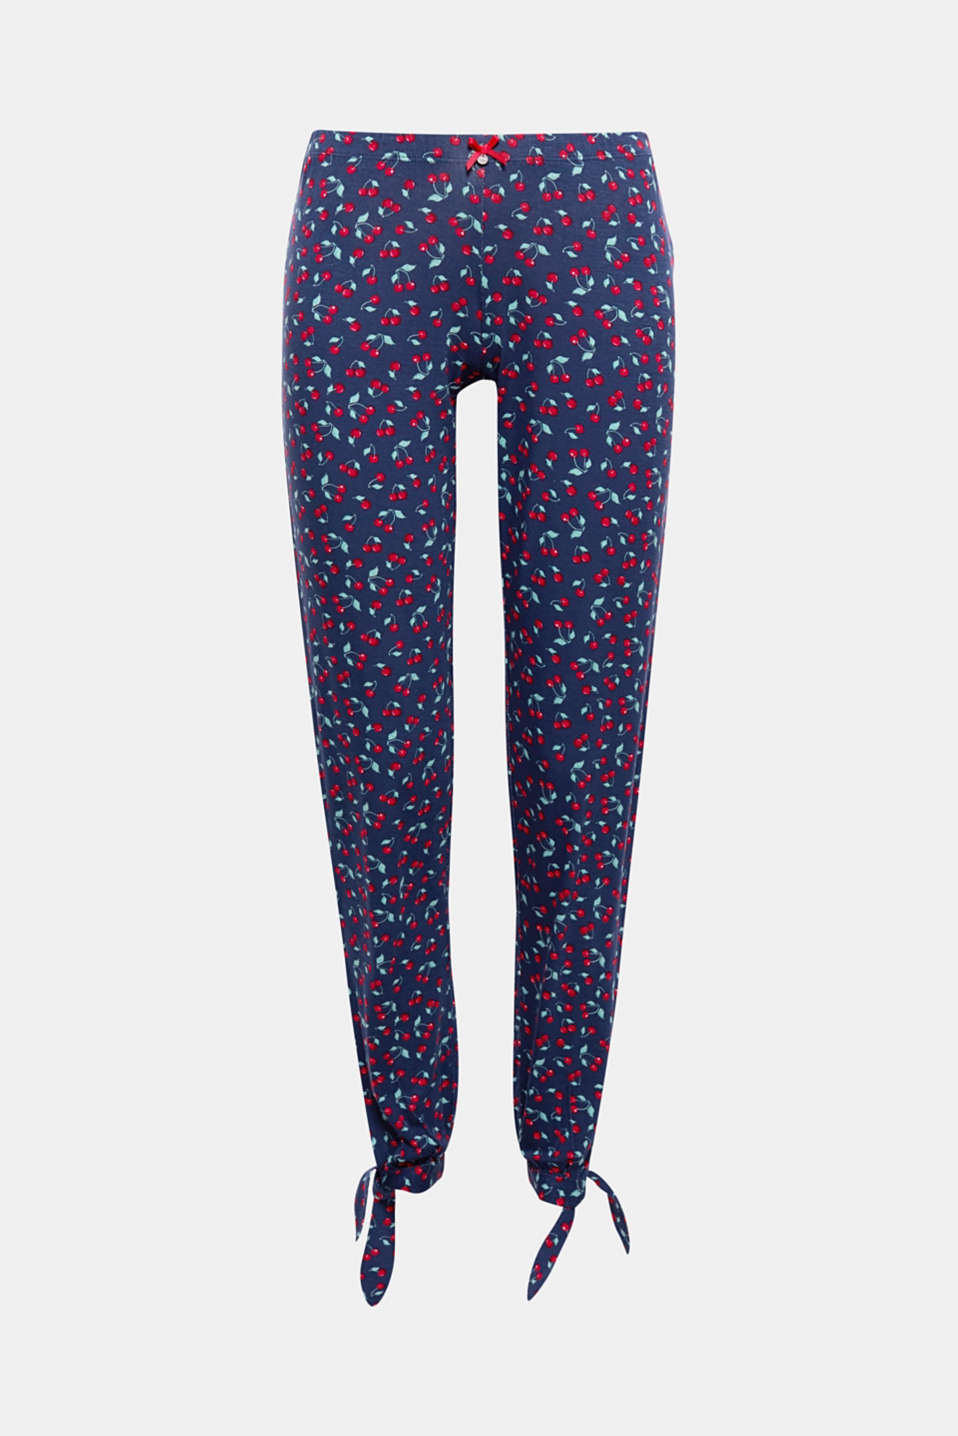 So cute: these jersey pyjama bottoms get their enchanting look from the cheerful cherry print!